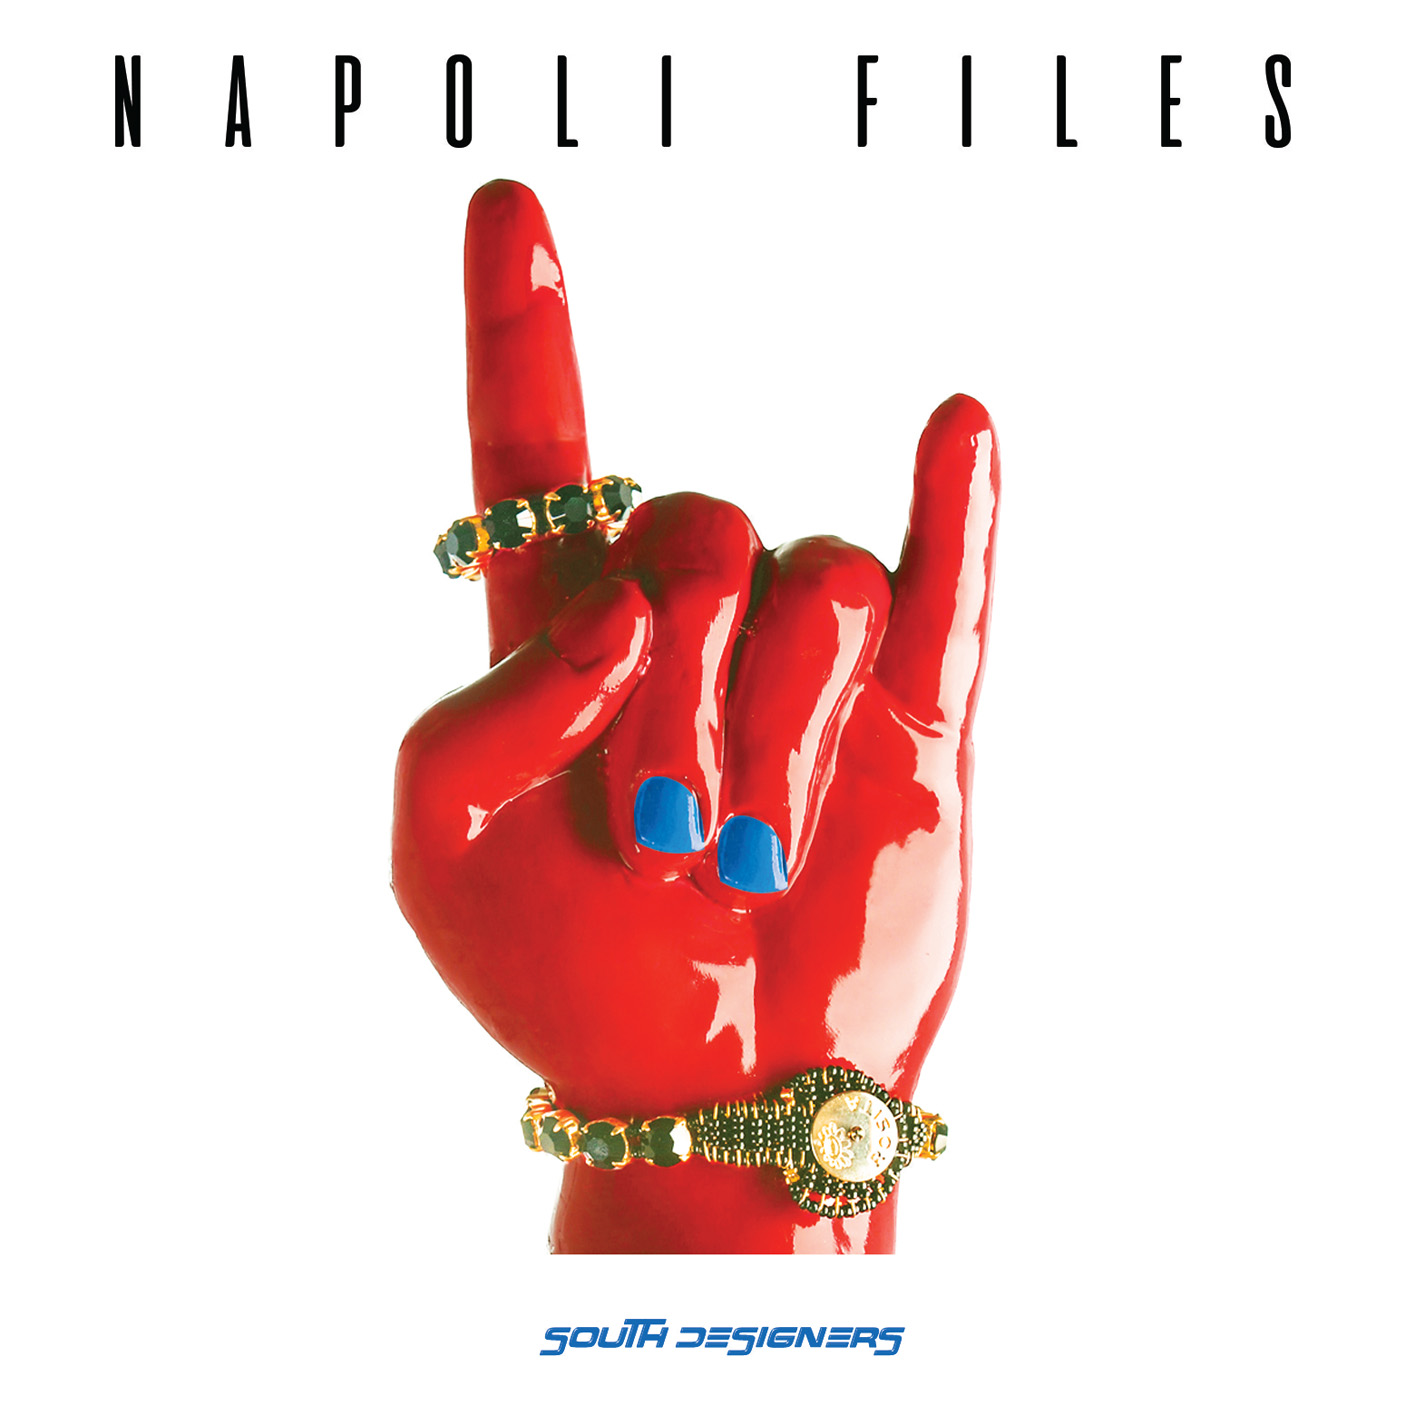 South Designers: Napoli Files, il nuovo album